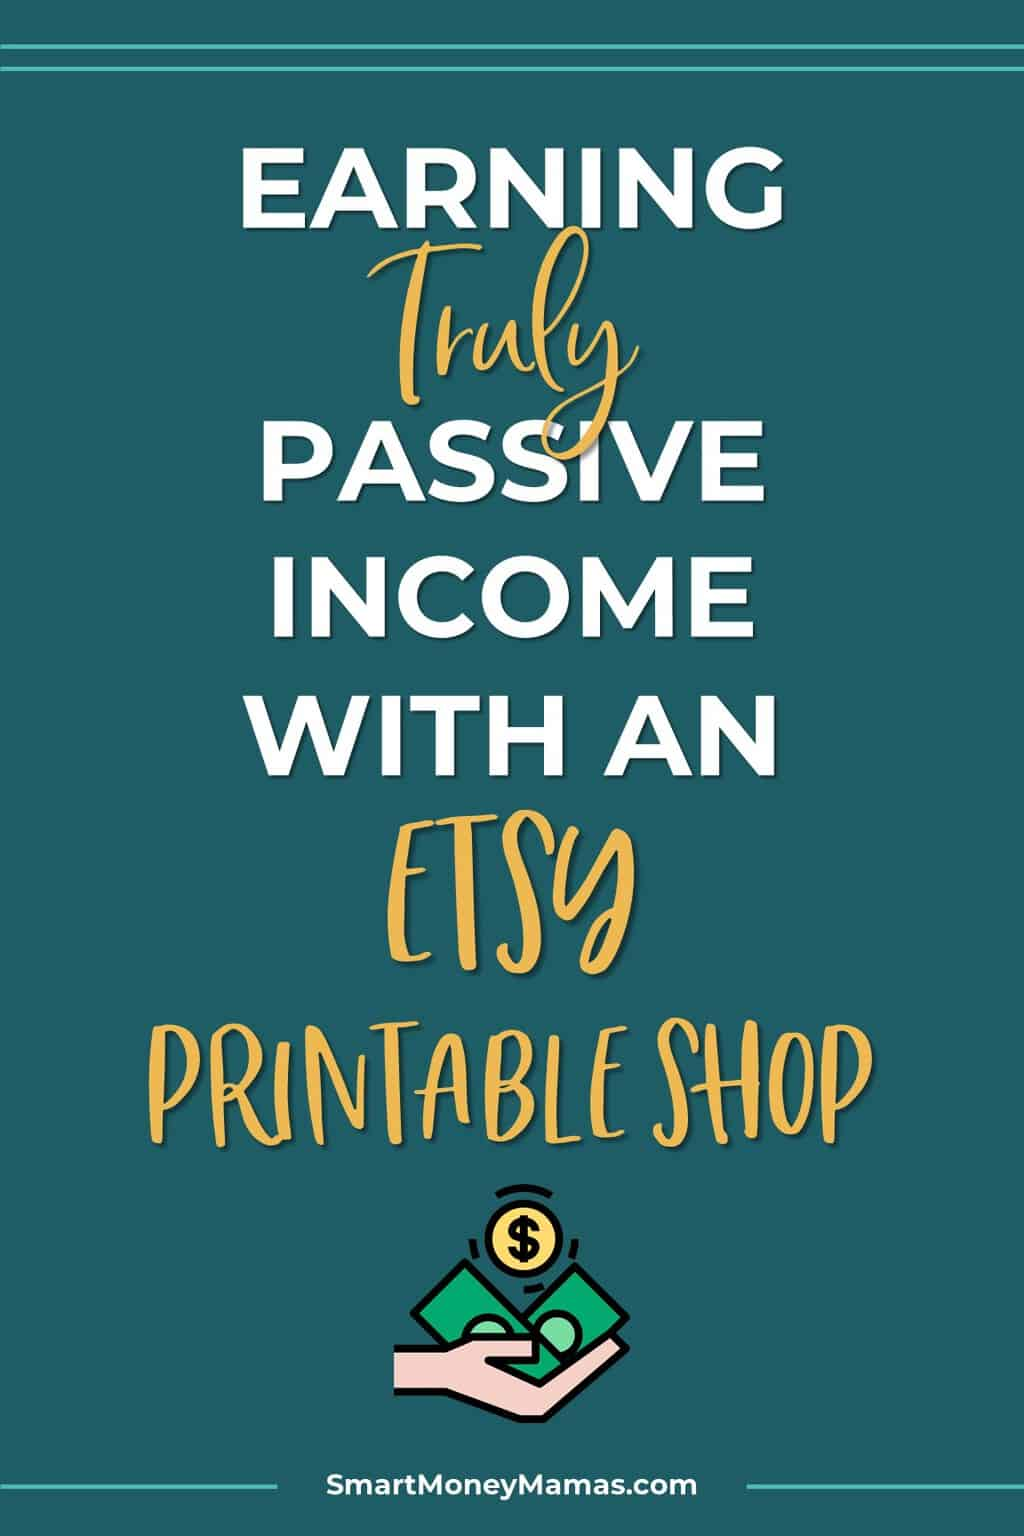 Becoming a new mom is stressful - especially when trying to balance money with all your new responsibilities. Learn how Julie found flexibility and comfort generating truly passive income from her printable Etsy shop! #smartmoneymamas #sidehustle #momboss #etsyshop #passiveincome